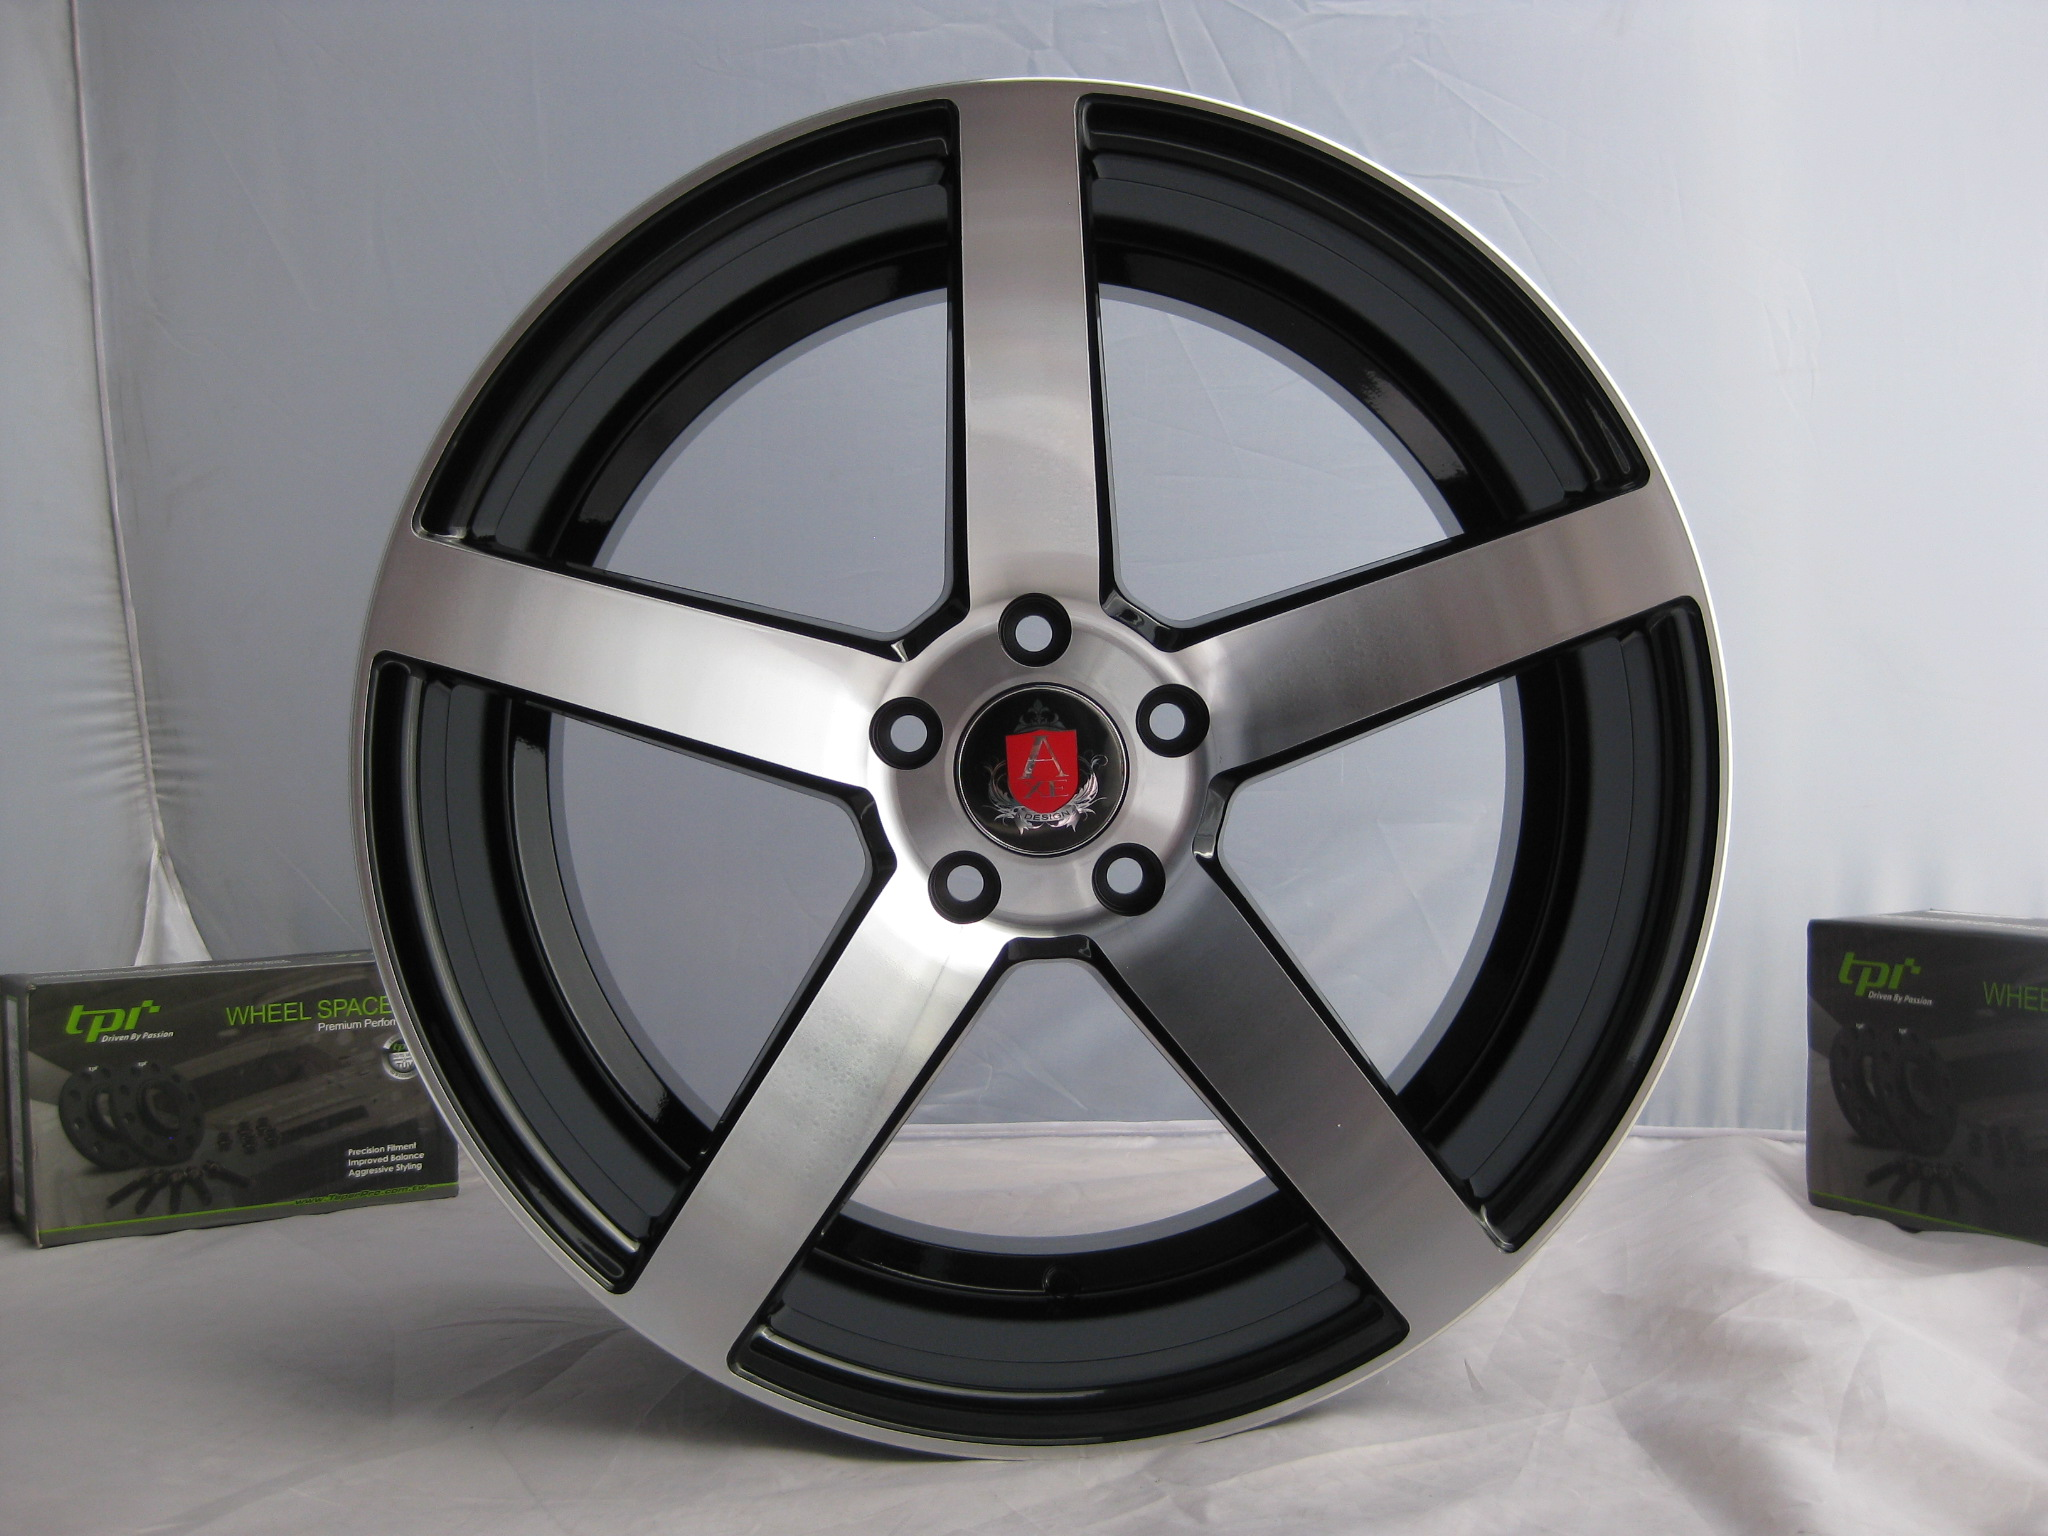 "NEW 18"" AXE EX18 DEEP CONCAVE ALLOY WHEELS IN GLOSS BLACK WITH POLISHED FACE, DEEP DISH, WIDER 9"" REAR"